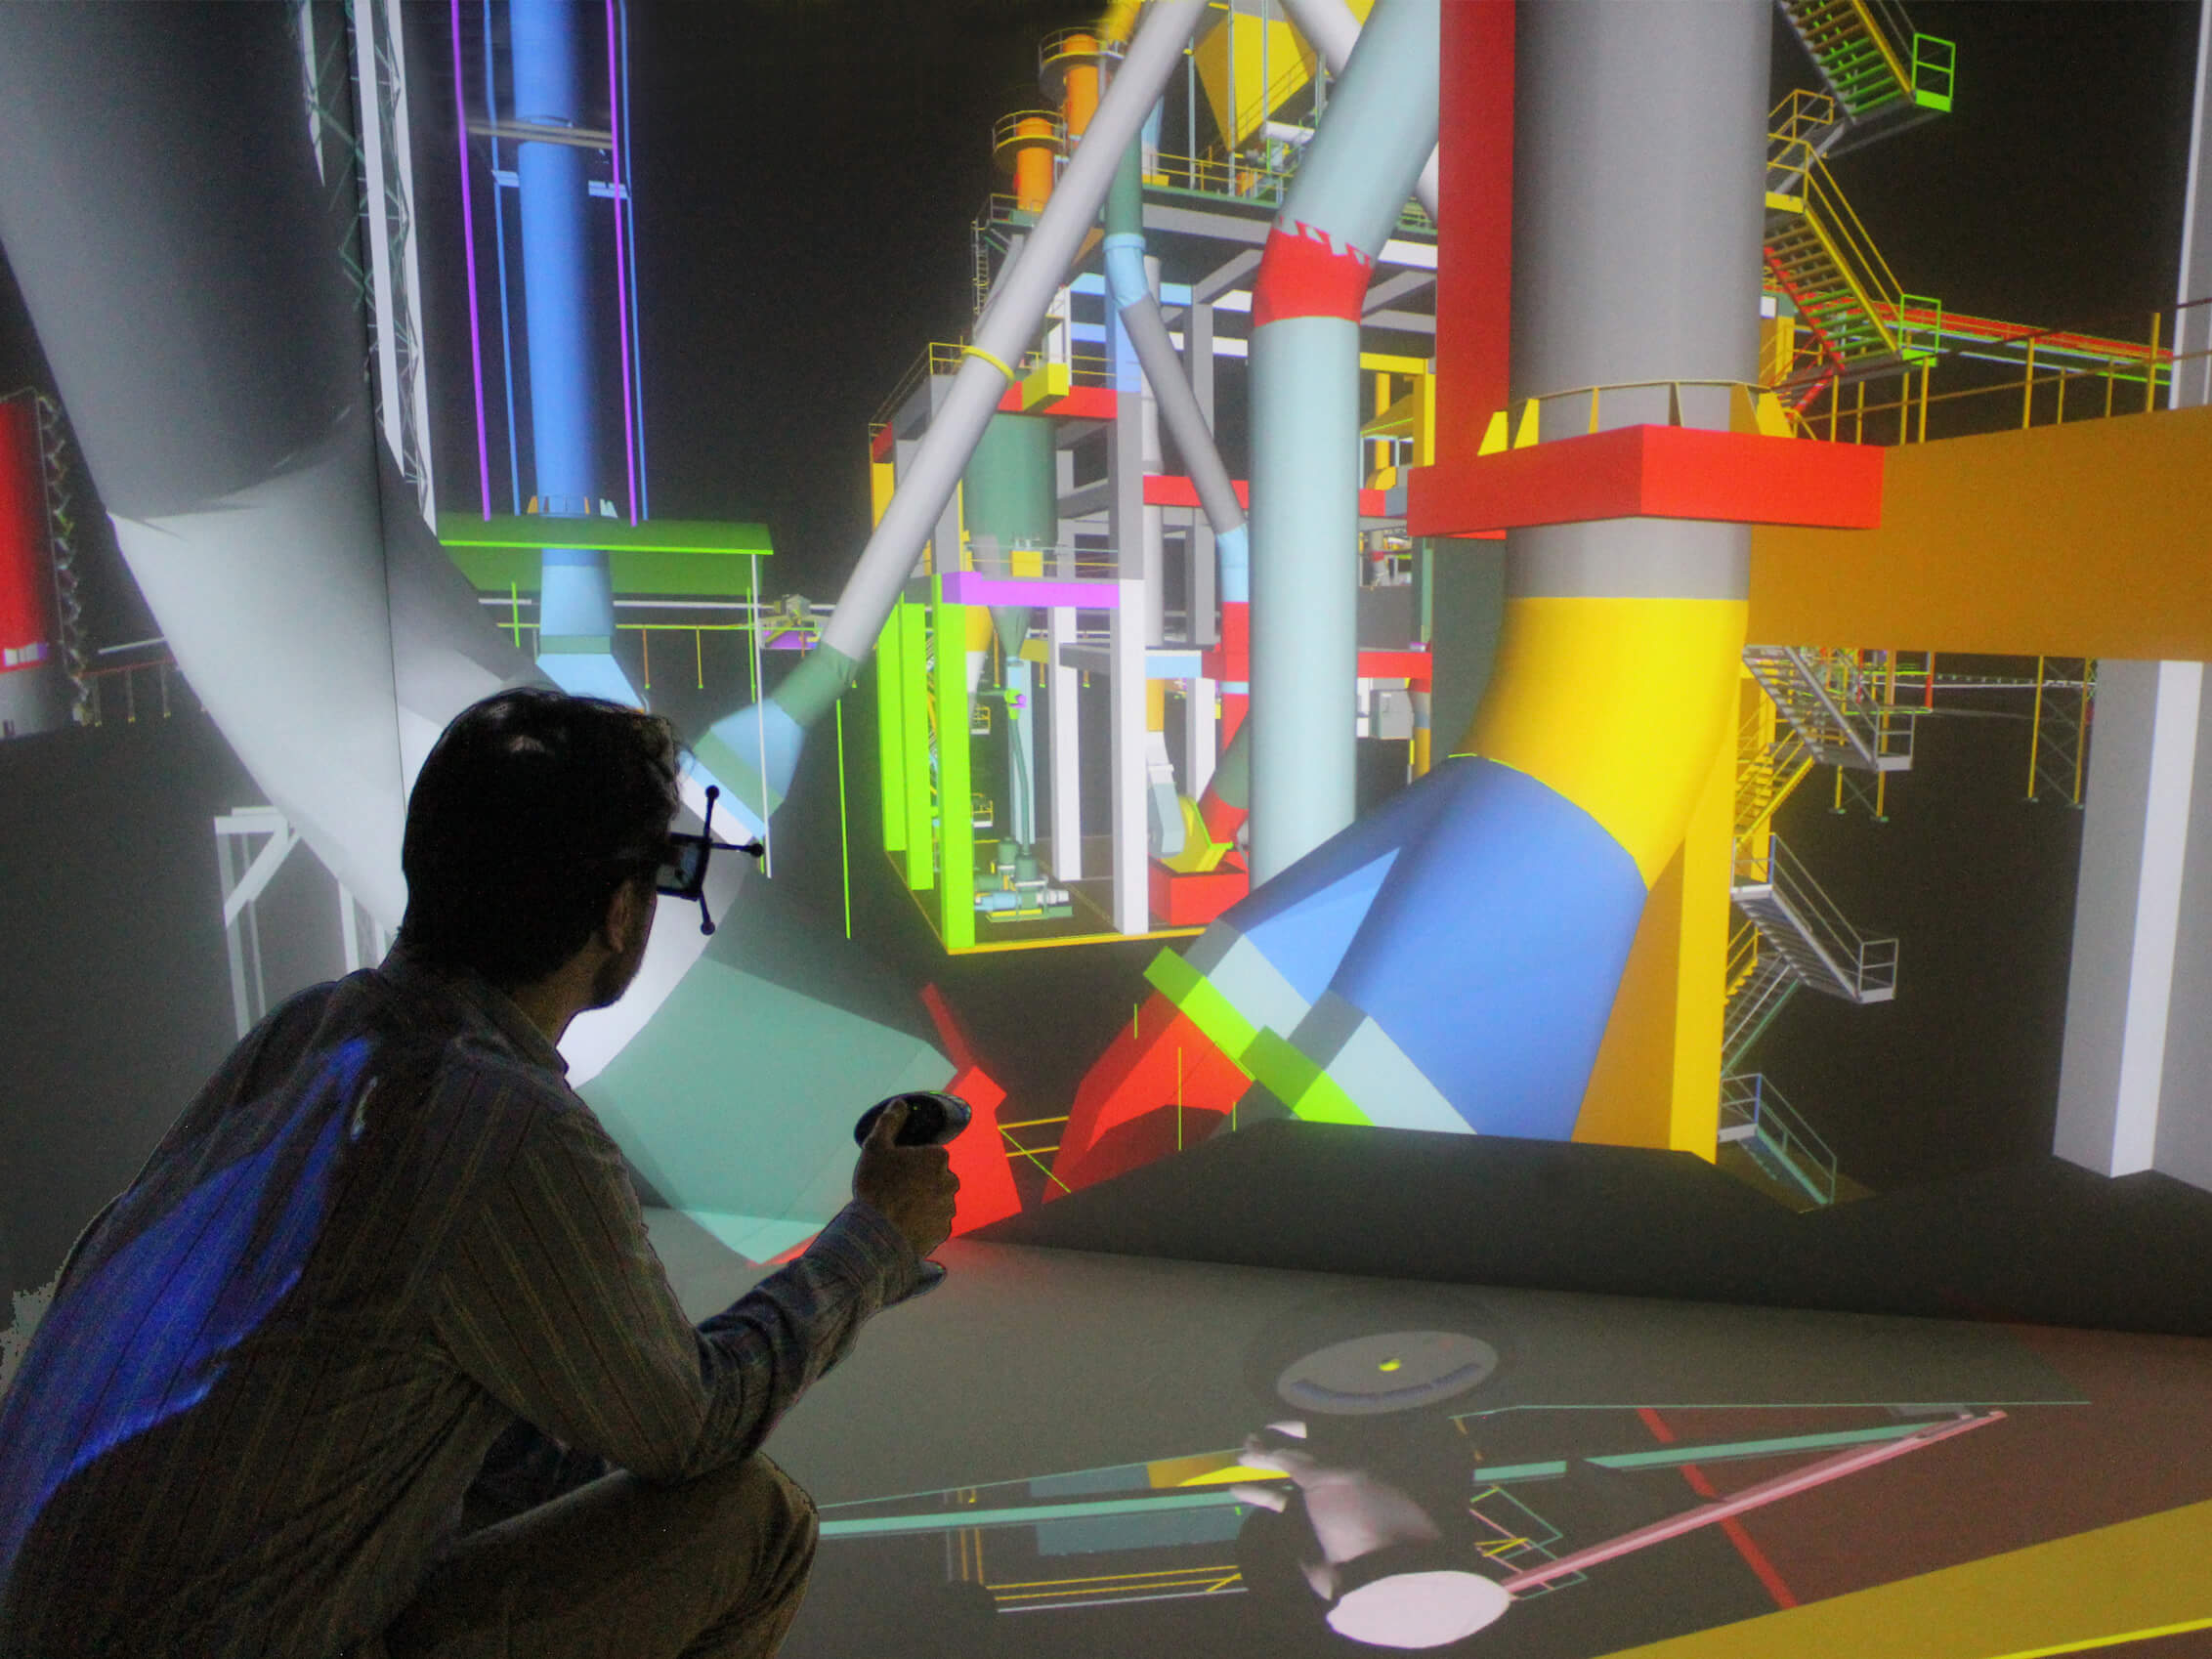 TechViz in the Industry and machinery sector